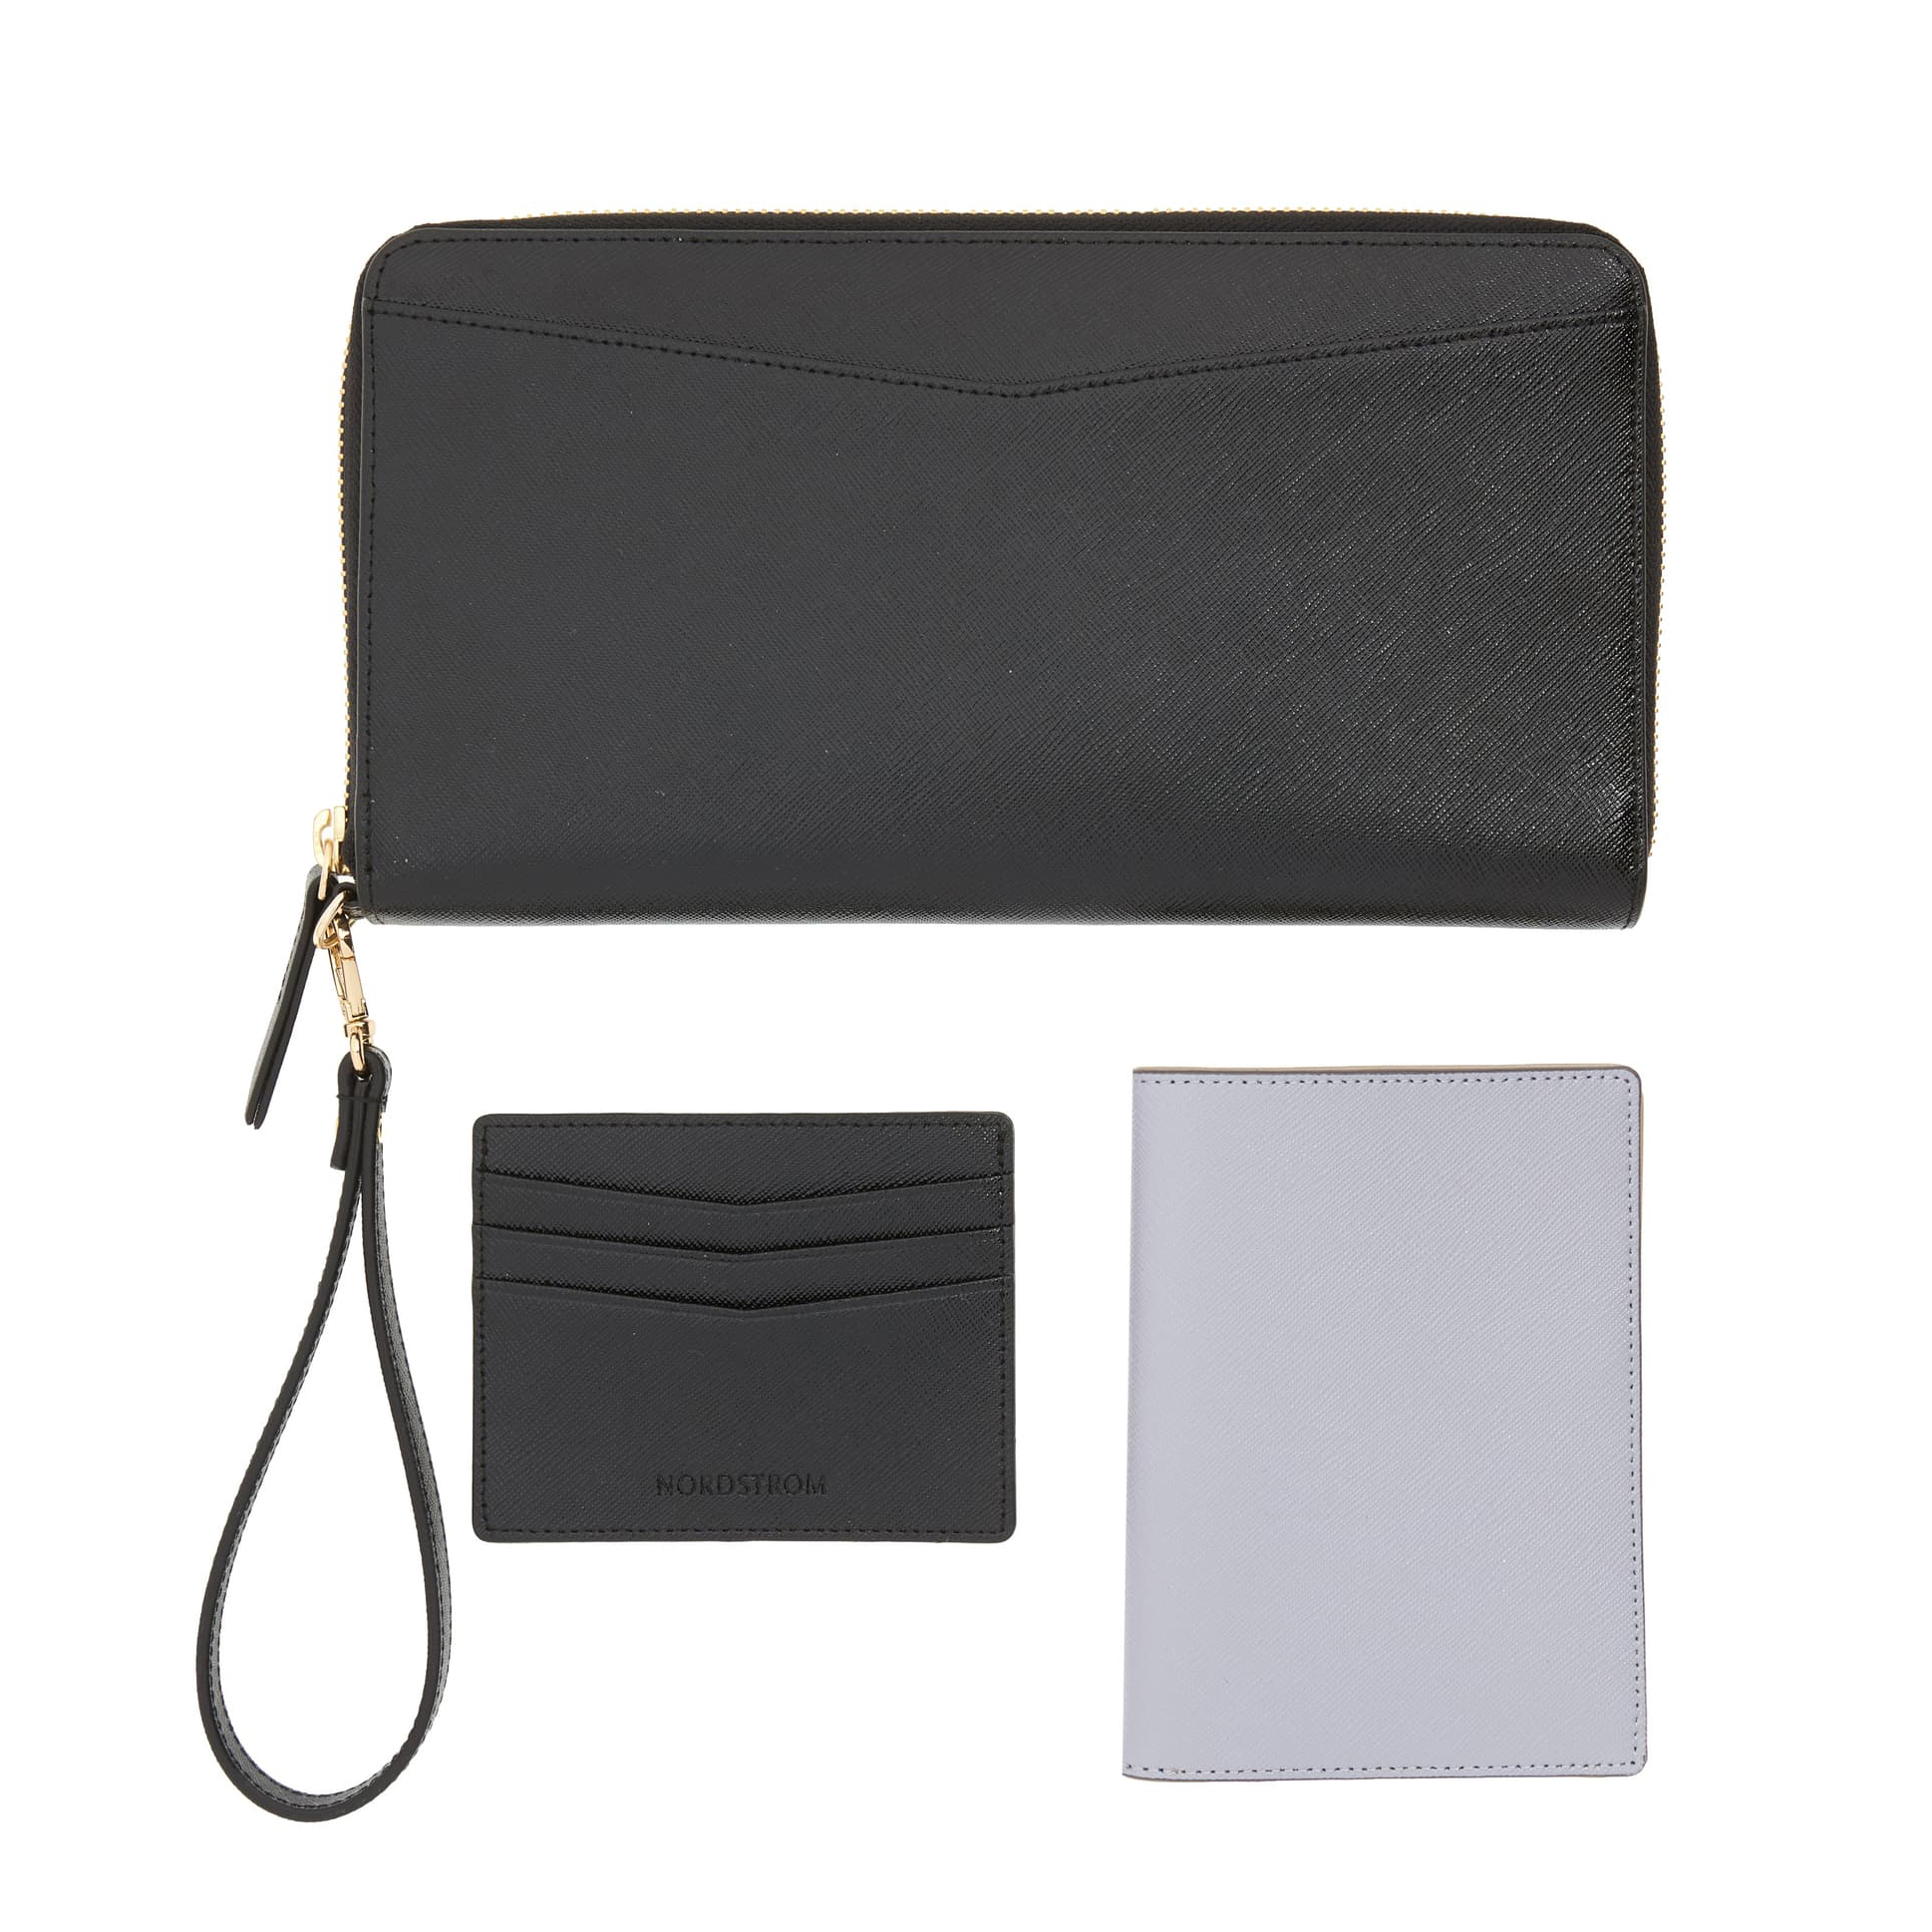 Leather Travel Organizer